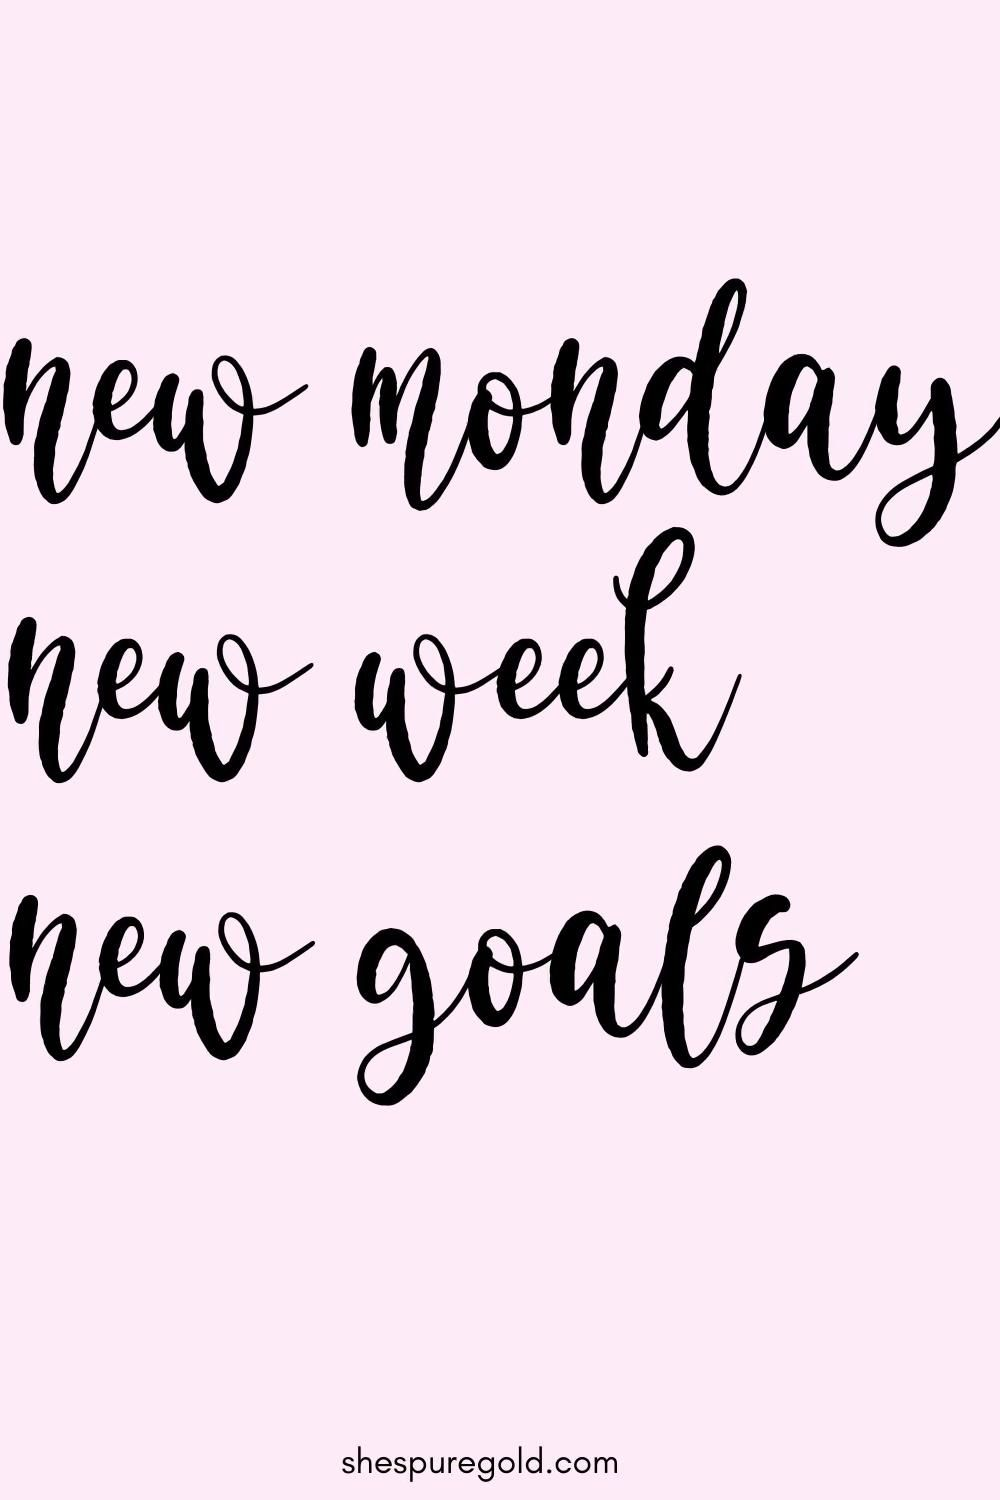 Motivation Monday Quotes | New Monday New Week New Goals.